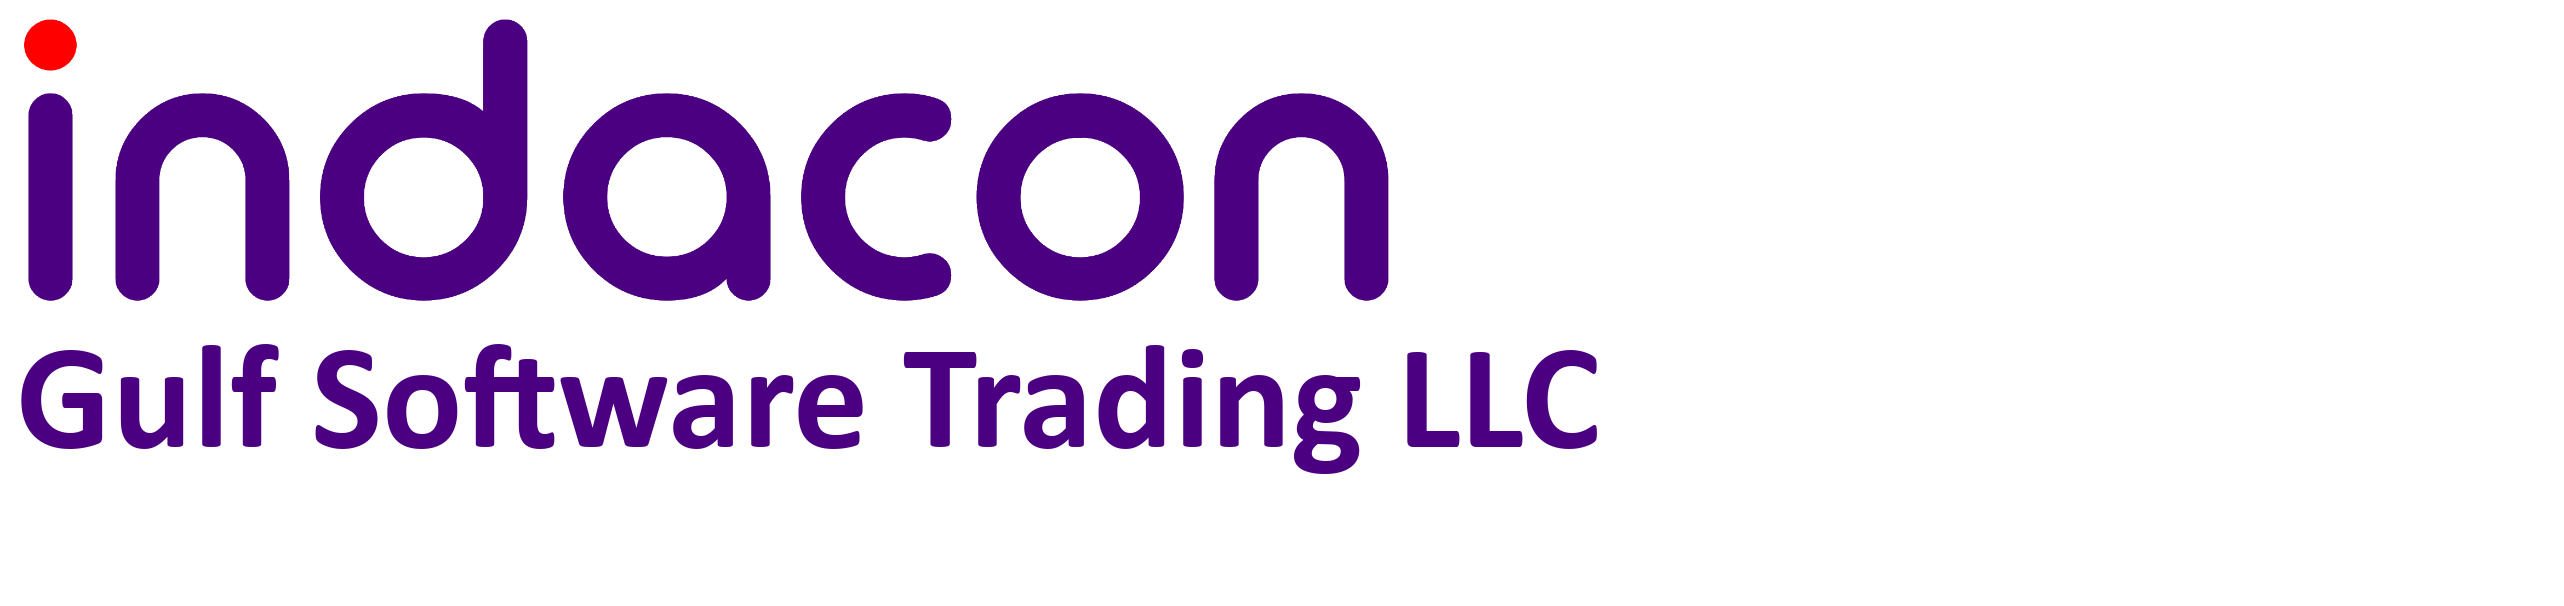 Indacon Gulf Software Trading LLC – Cloud, Security and